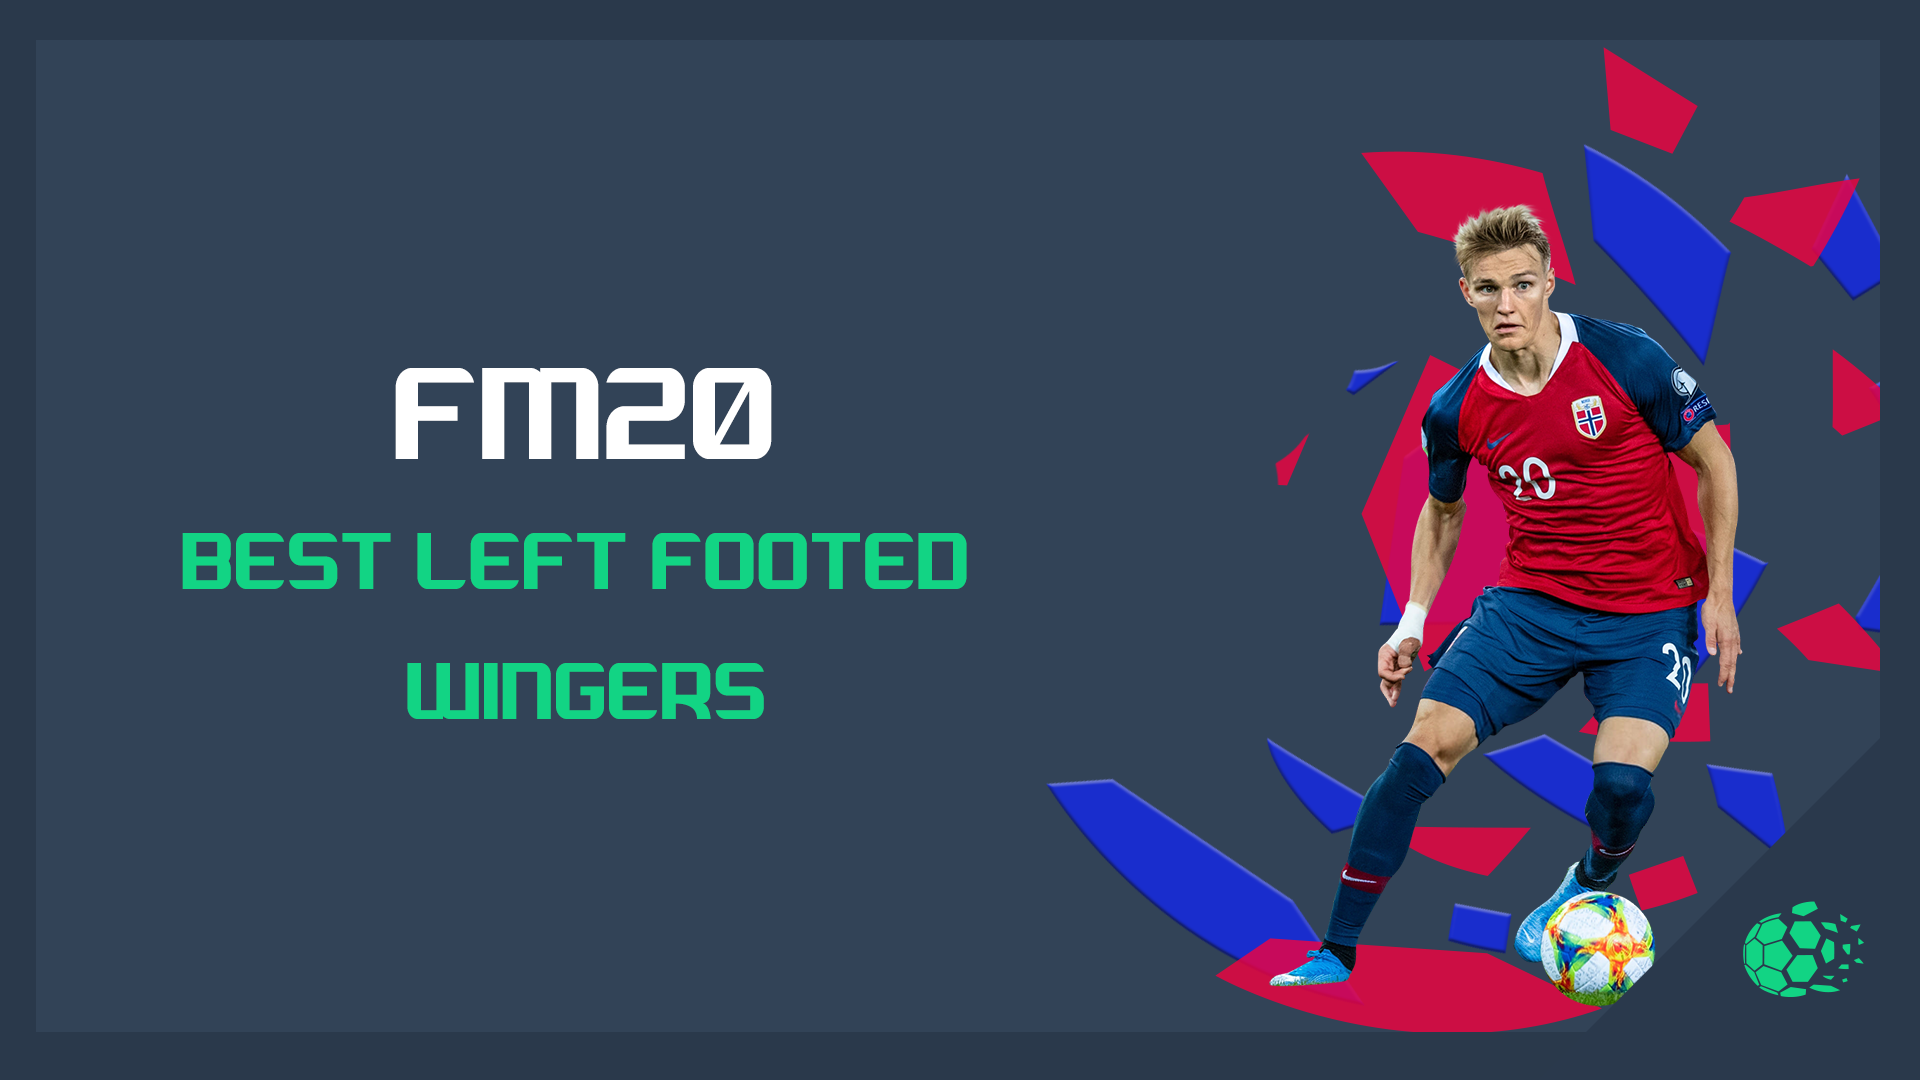 """""""FM20FM20: Best Left Footed Wingers"""" feature image"""